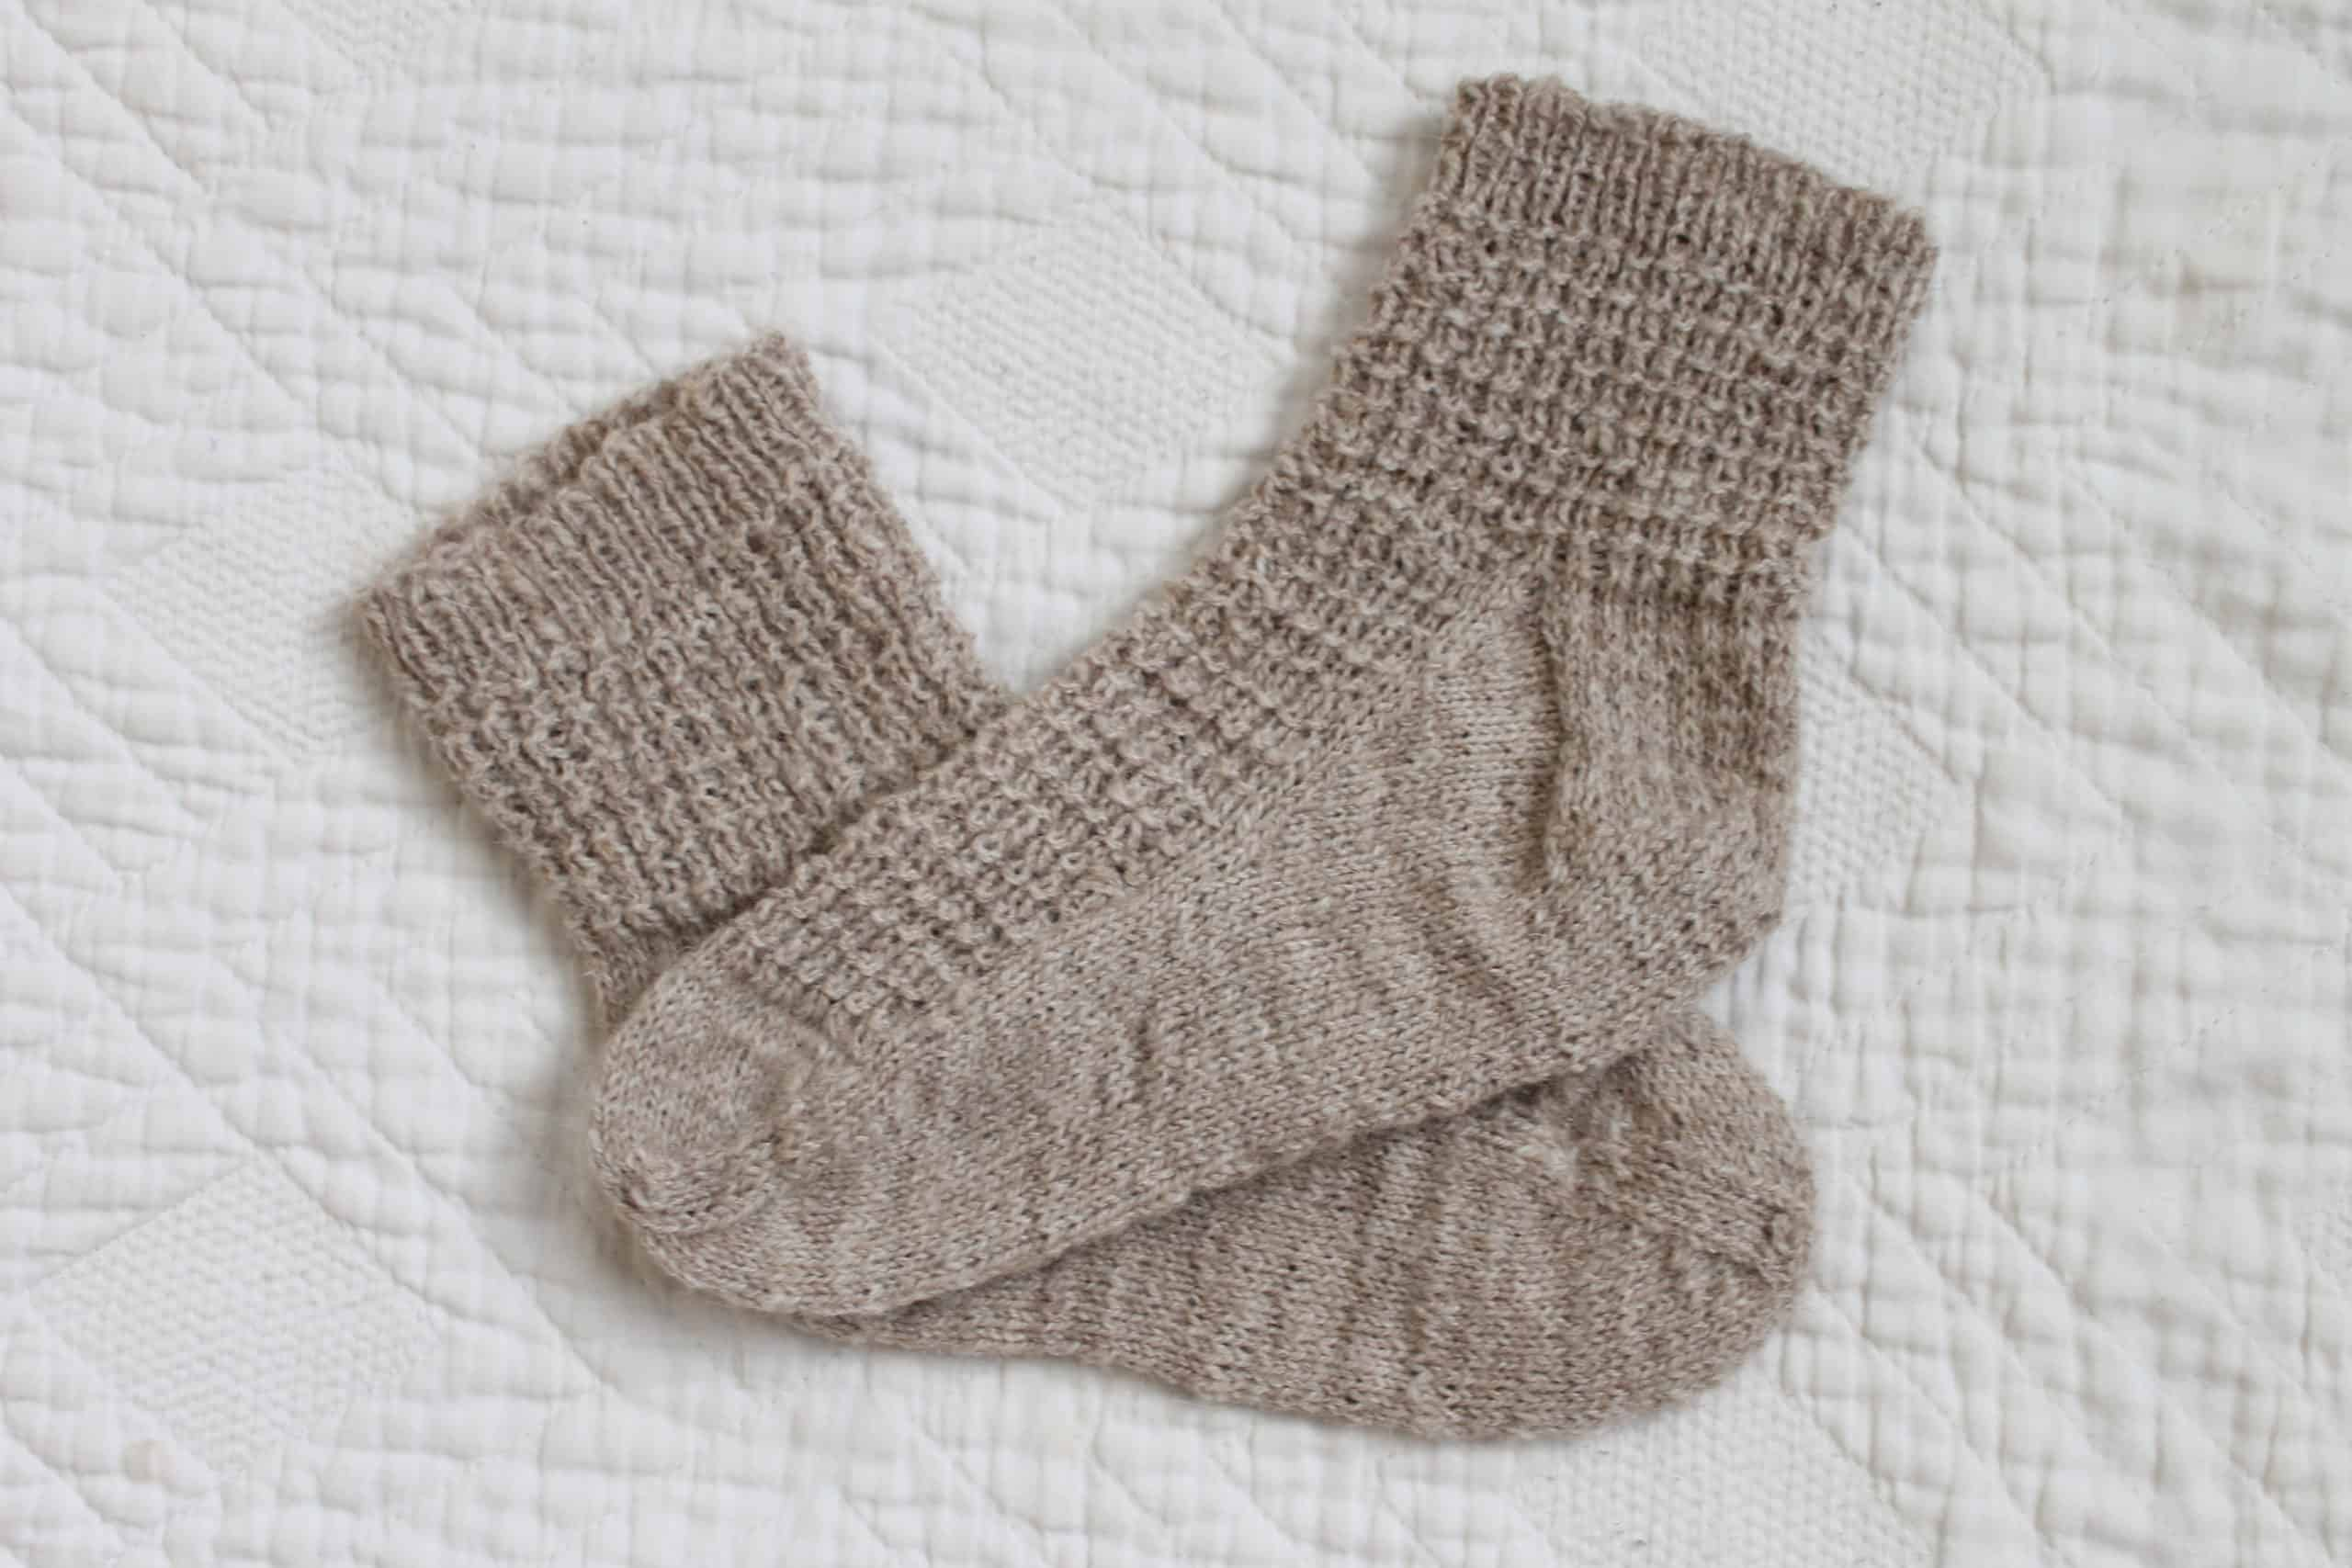 A pair of cream-colored socks.